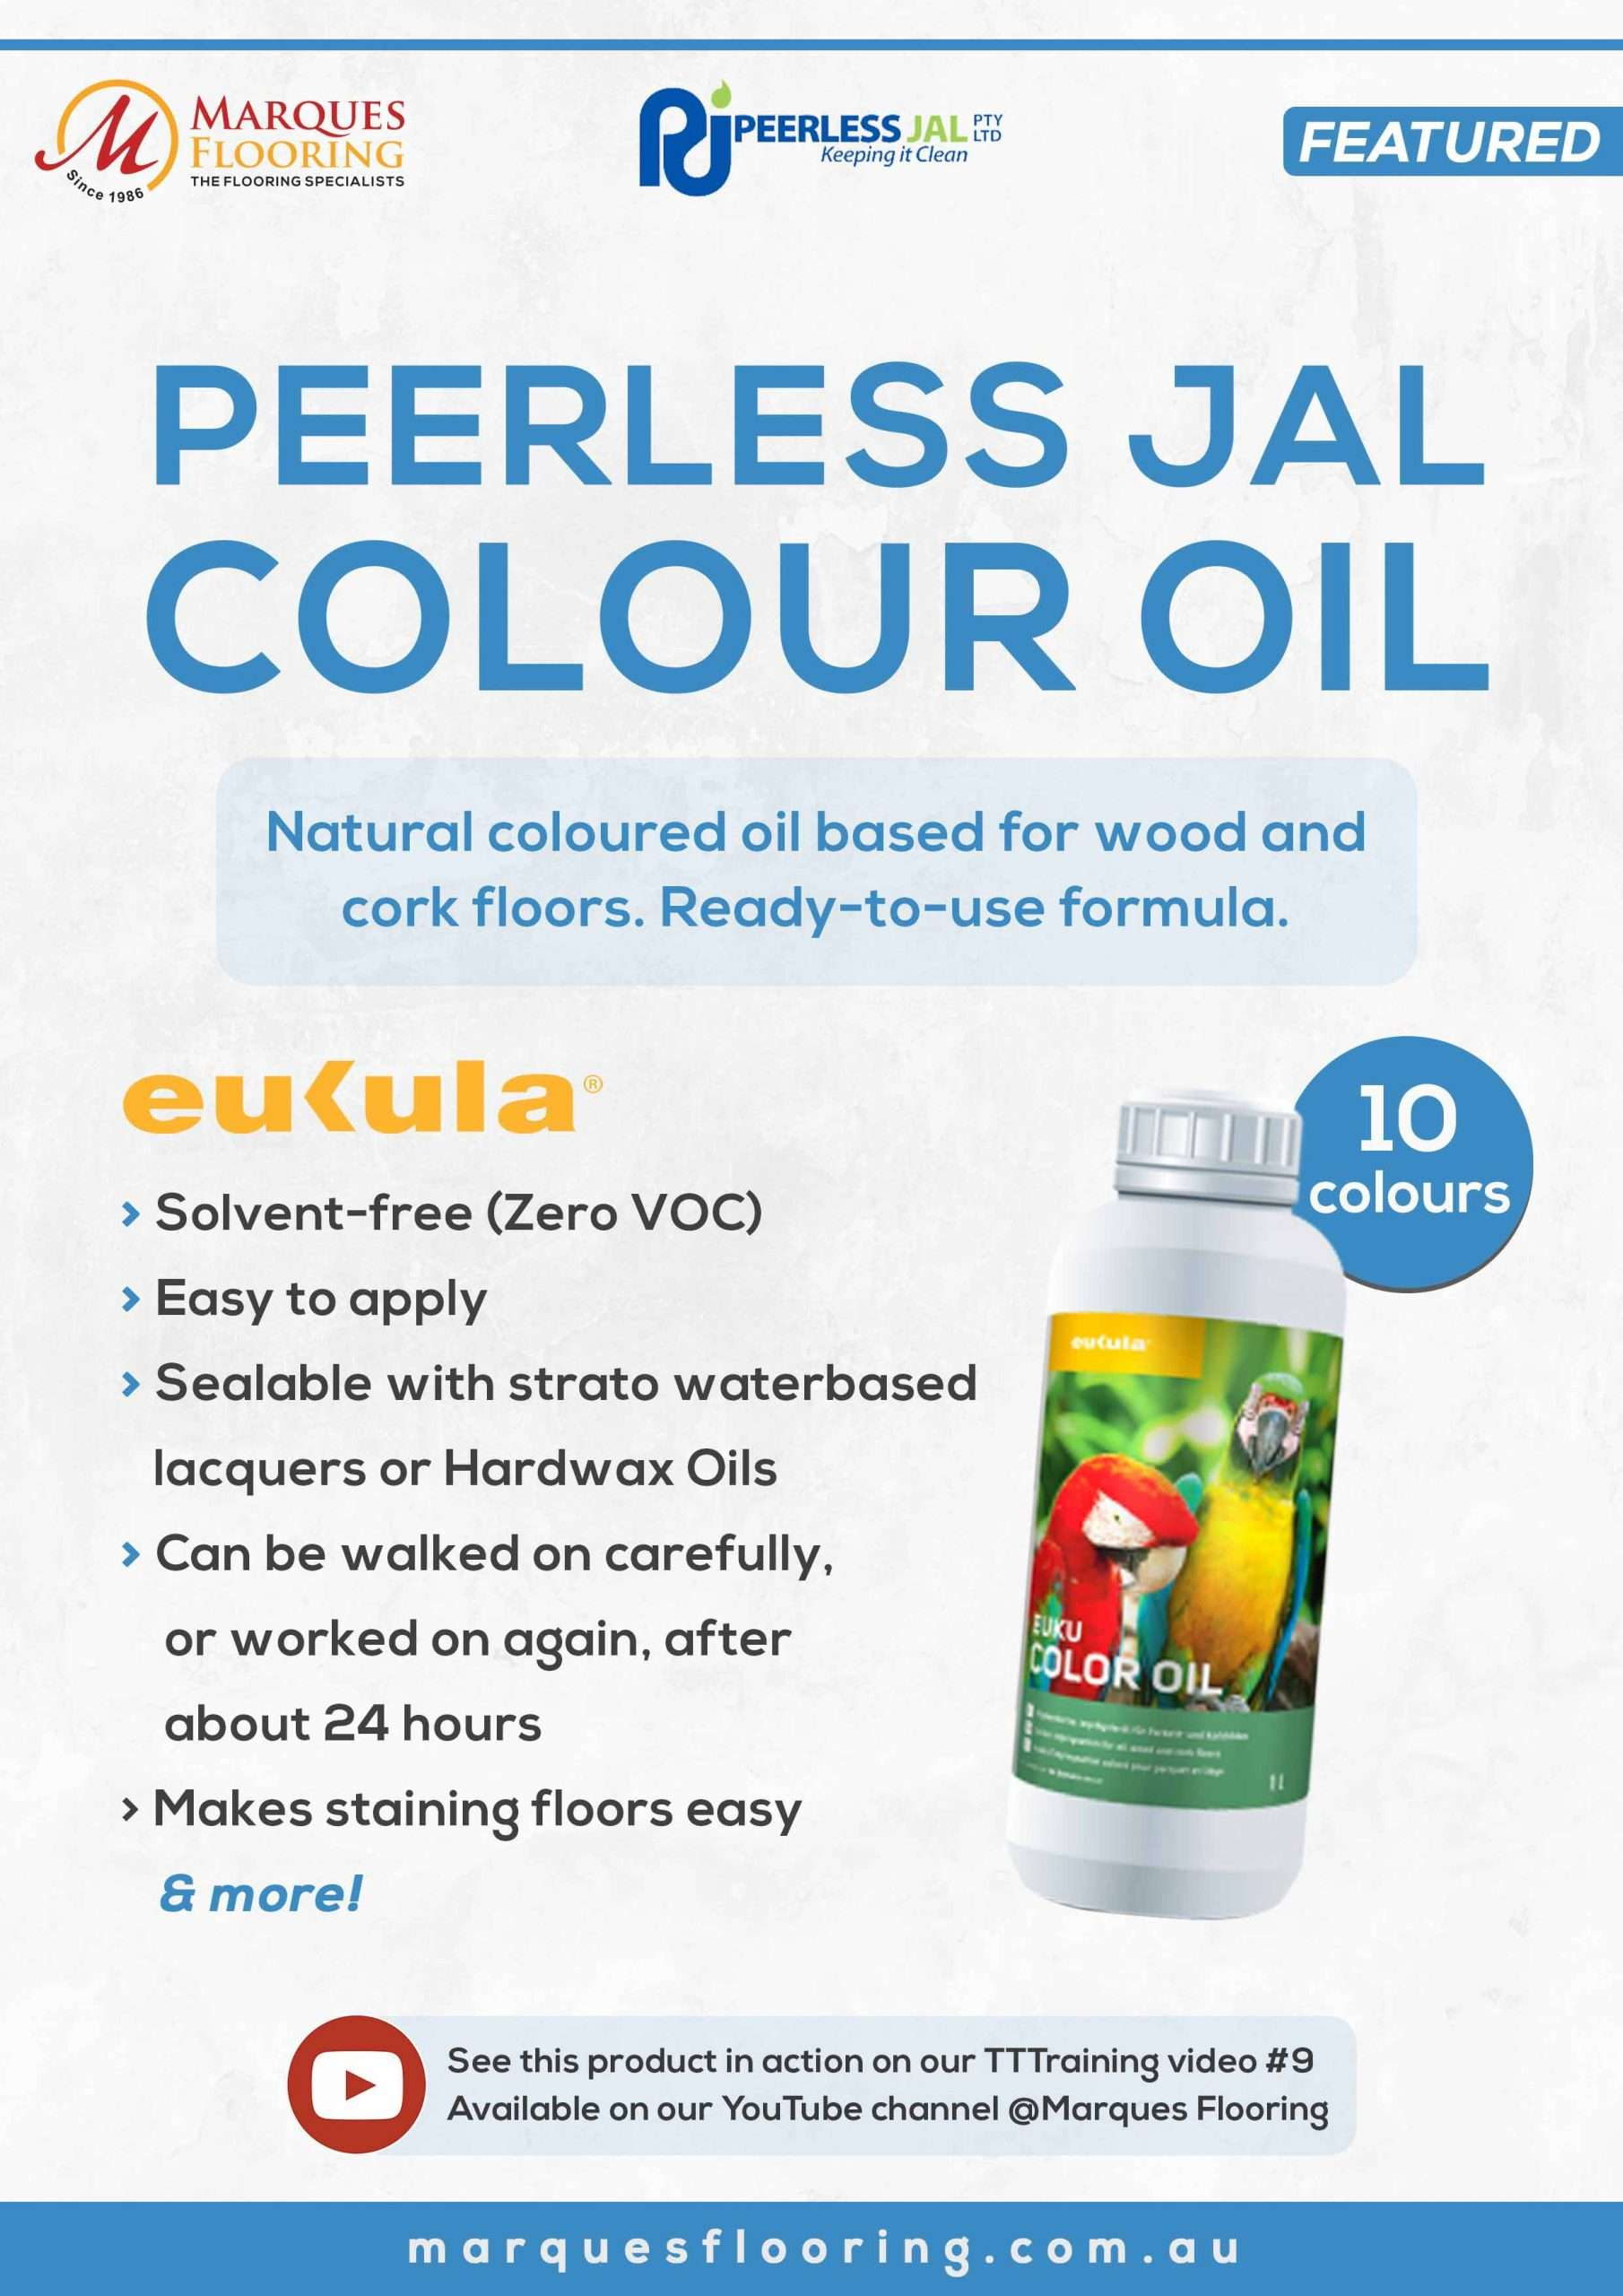 peerless-jal-colour-oils-website